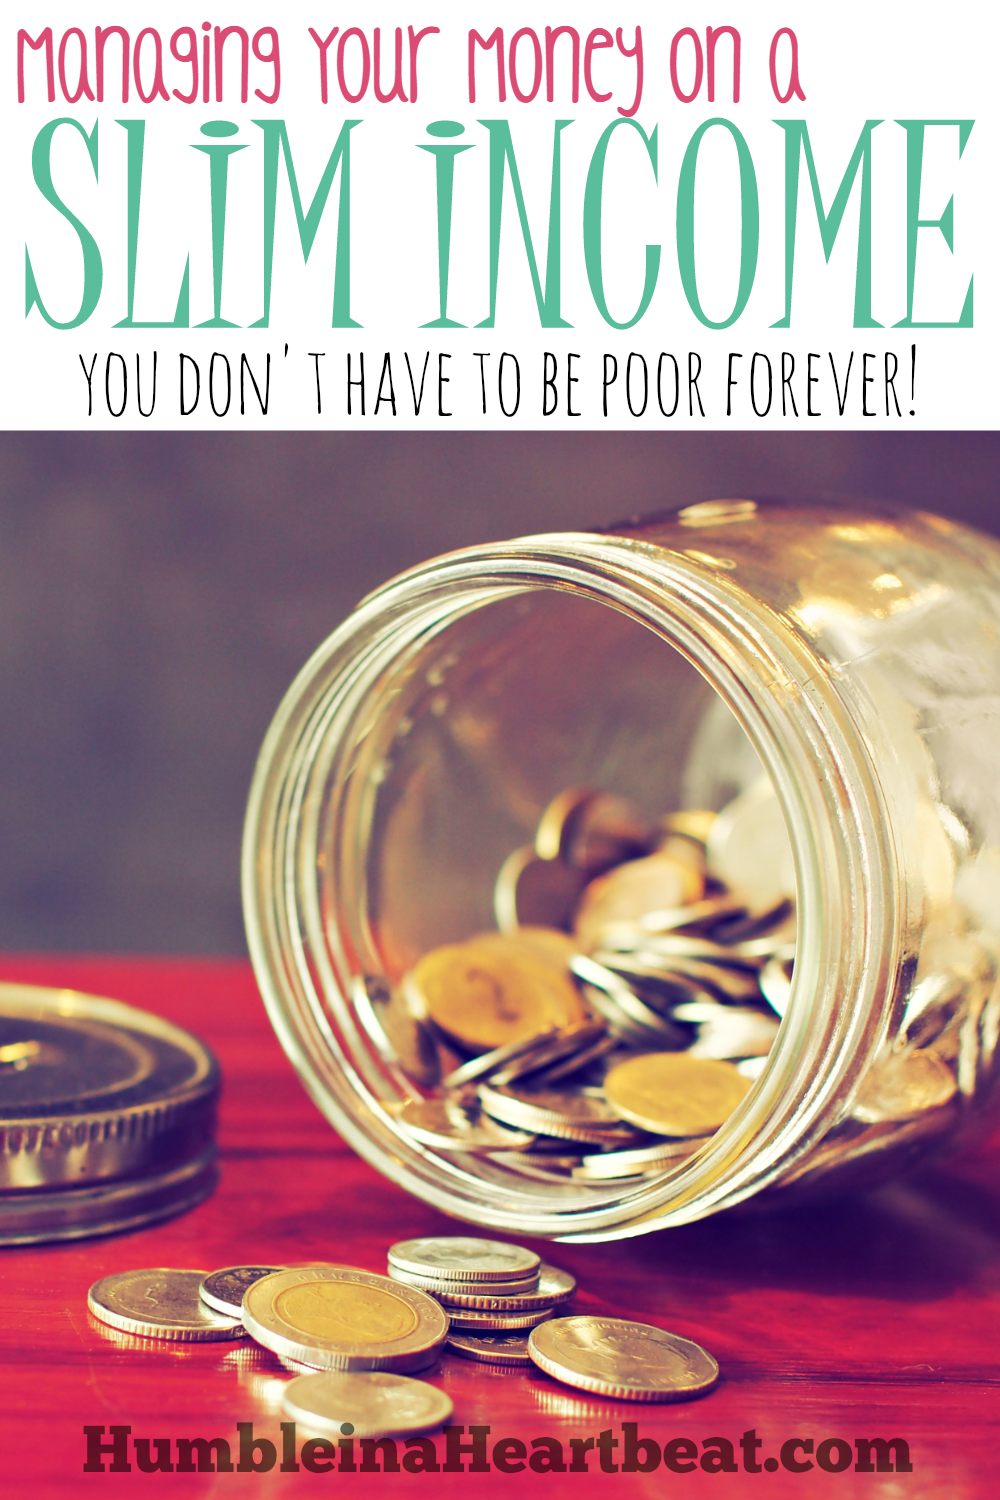 If you live on a low income, managing your finances well becomes more important than ever. Take these steps to be sure you are keeping as much money as possible and moving towards a better life.